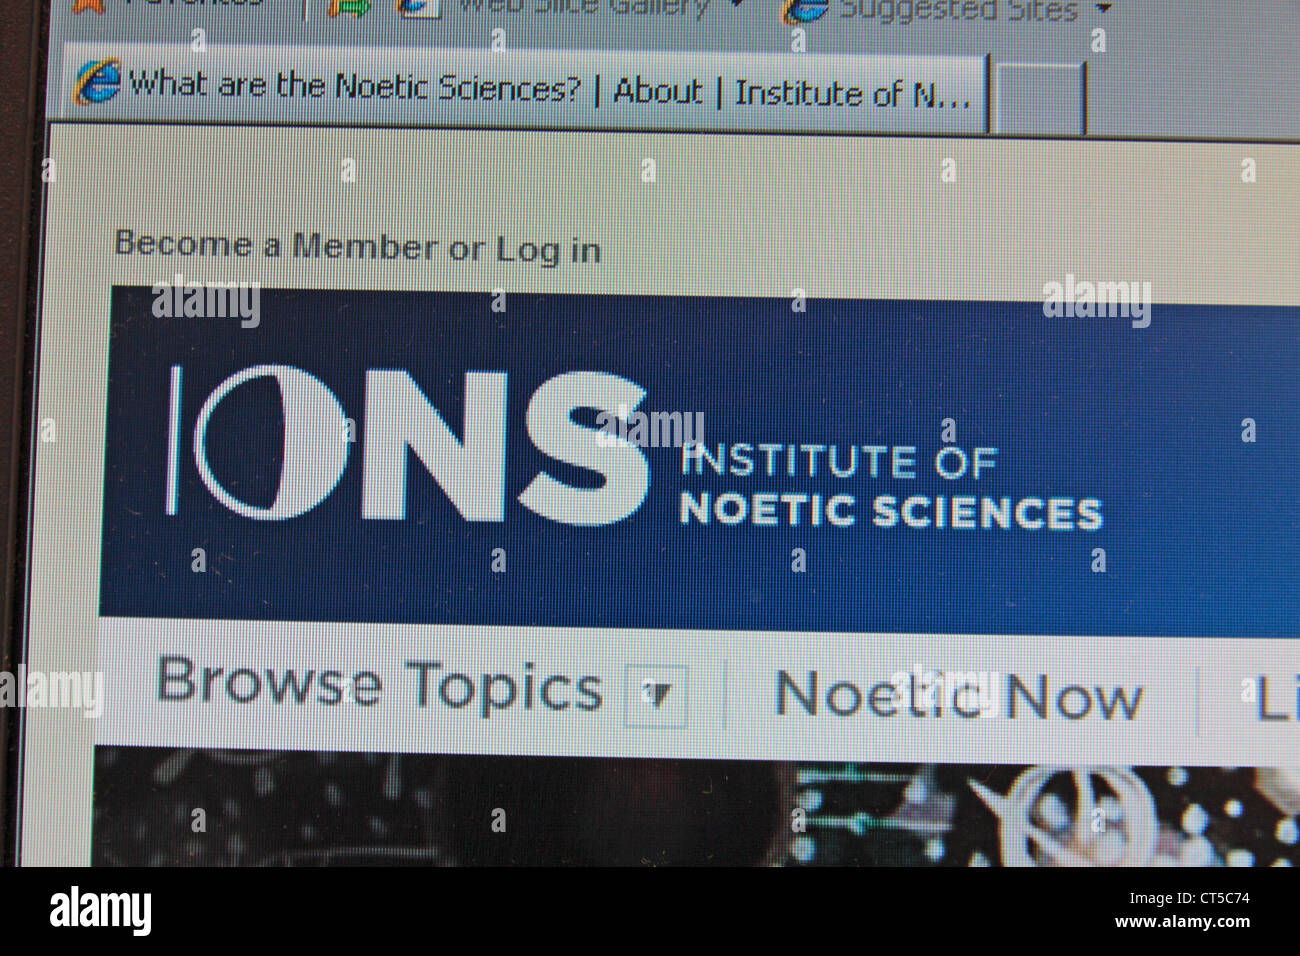 Screen view of The Institute of Noetic Sciences website. - Stock Image